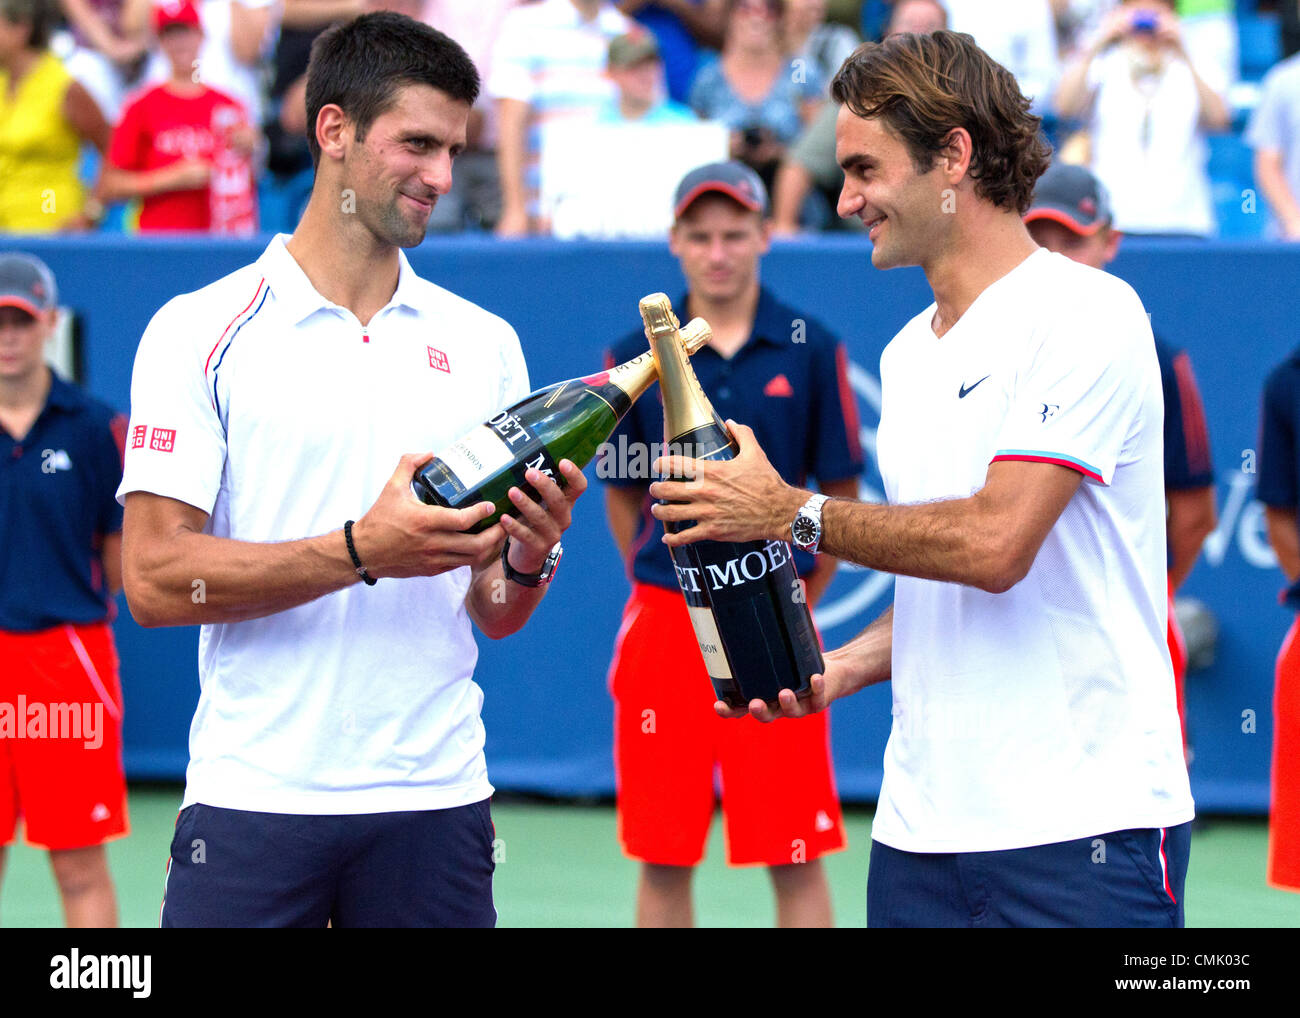 19 August 2012: Roger Federer (SUI) and Novak Djokovic (SRB) hold their commemorative bottles after the Men's Singles Stock Photo